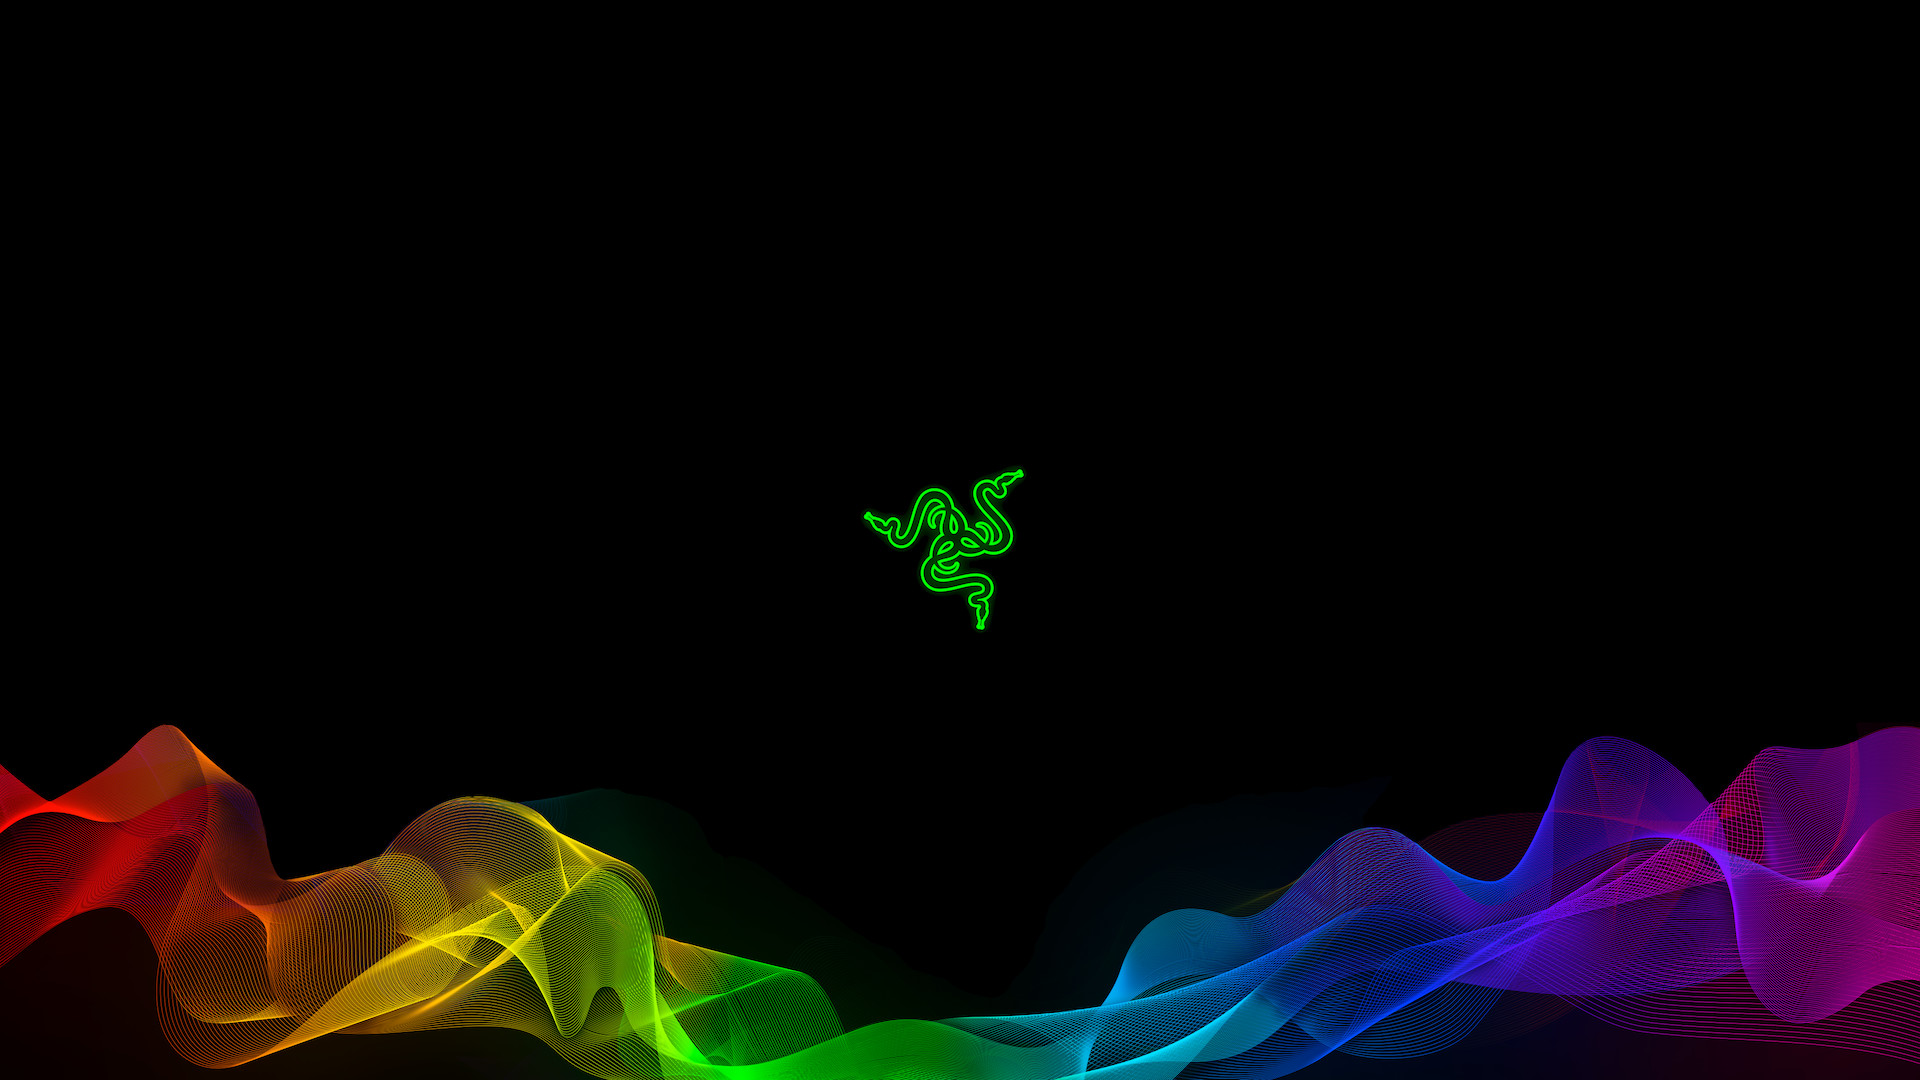 Razer background 80 images - 32 inch wallpaper tv ...